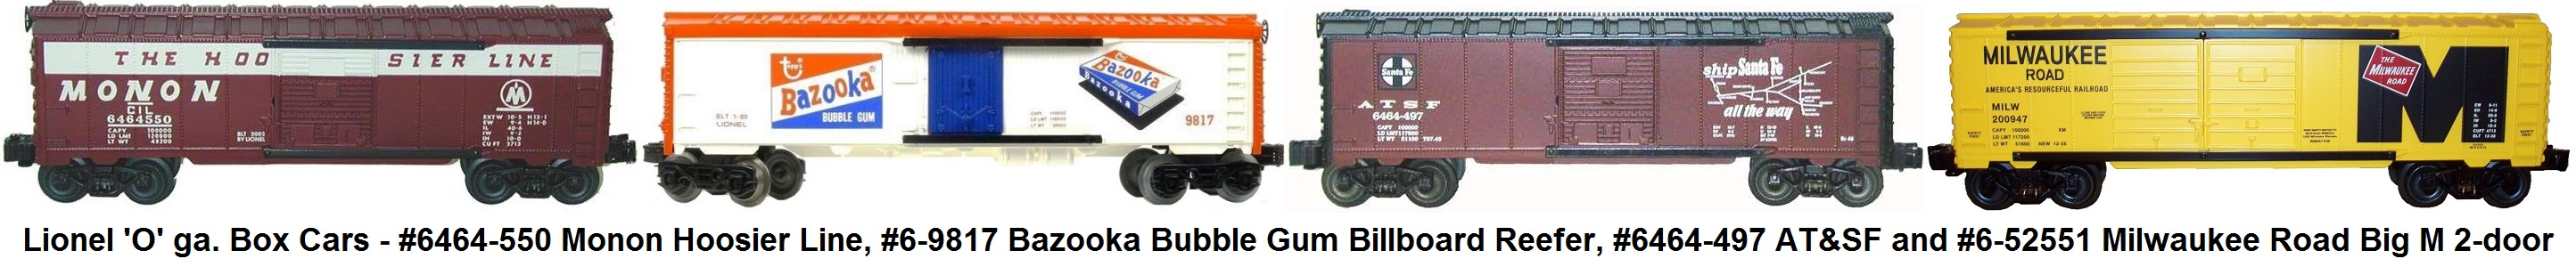 Lionel 'O' gauge #6464-550 Monon Hoosier Line, #6-9817 Bazooka Bubble Gum Billboard Reefer, #6464-497 AT&SF and #6-52551 Milwaukee Road Big M 2-door Box Cars